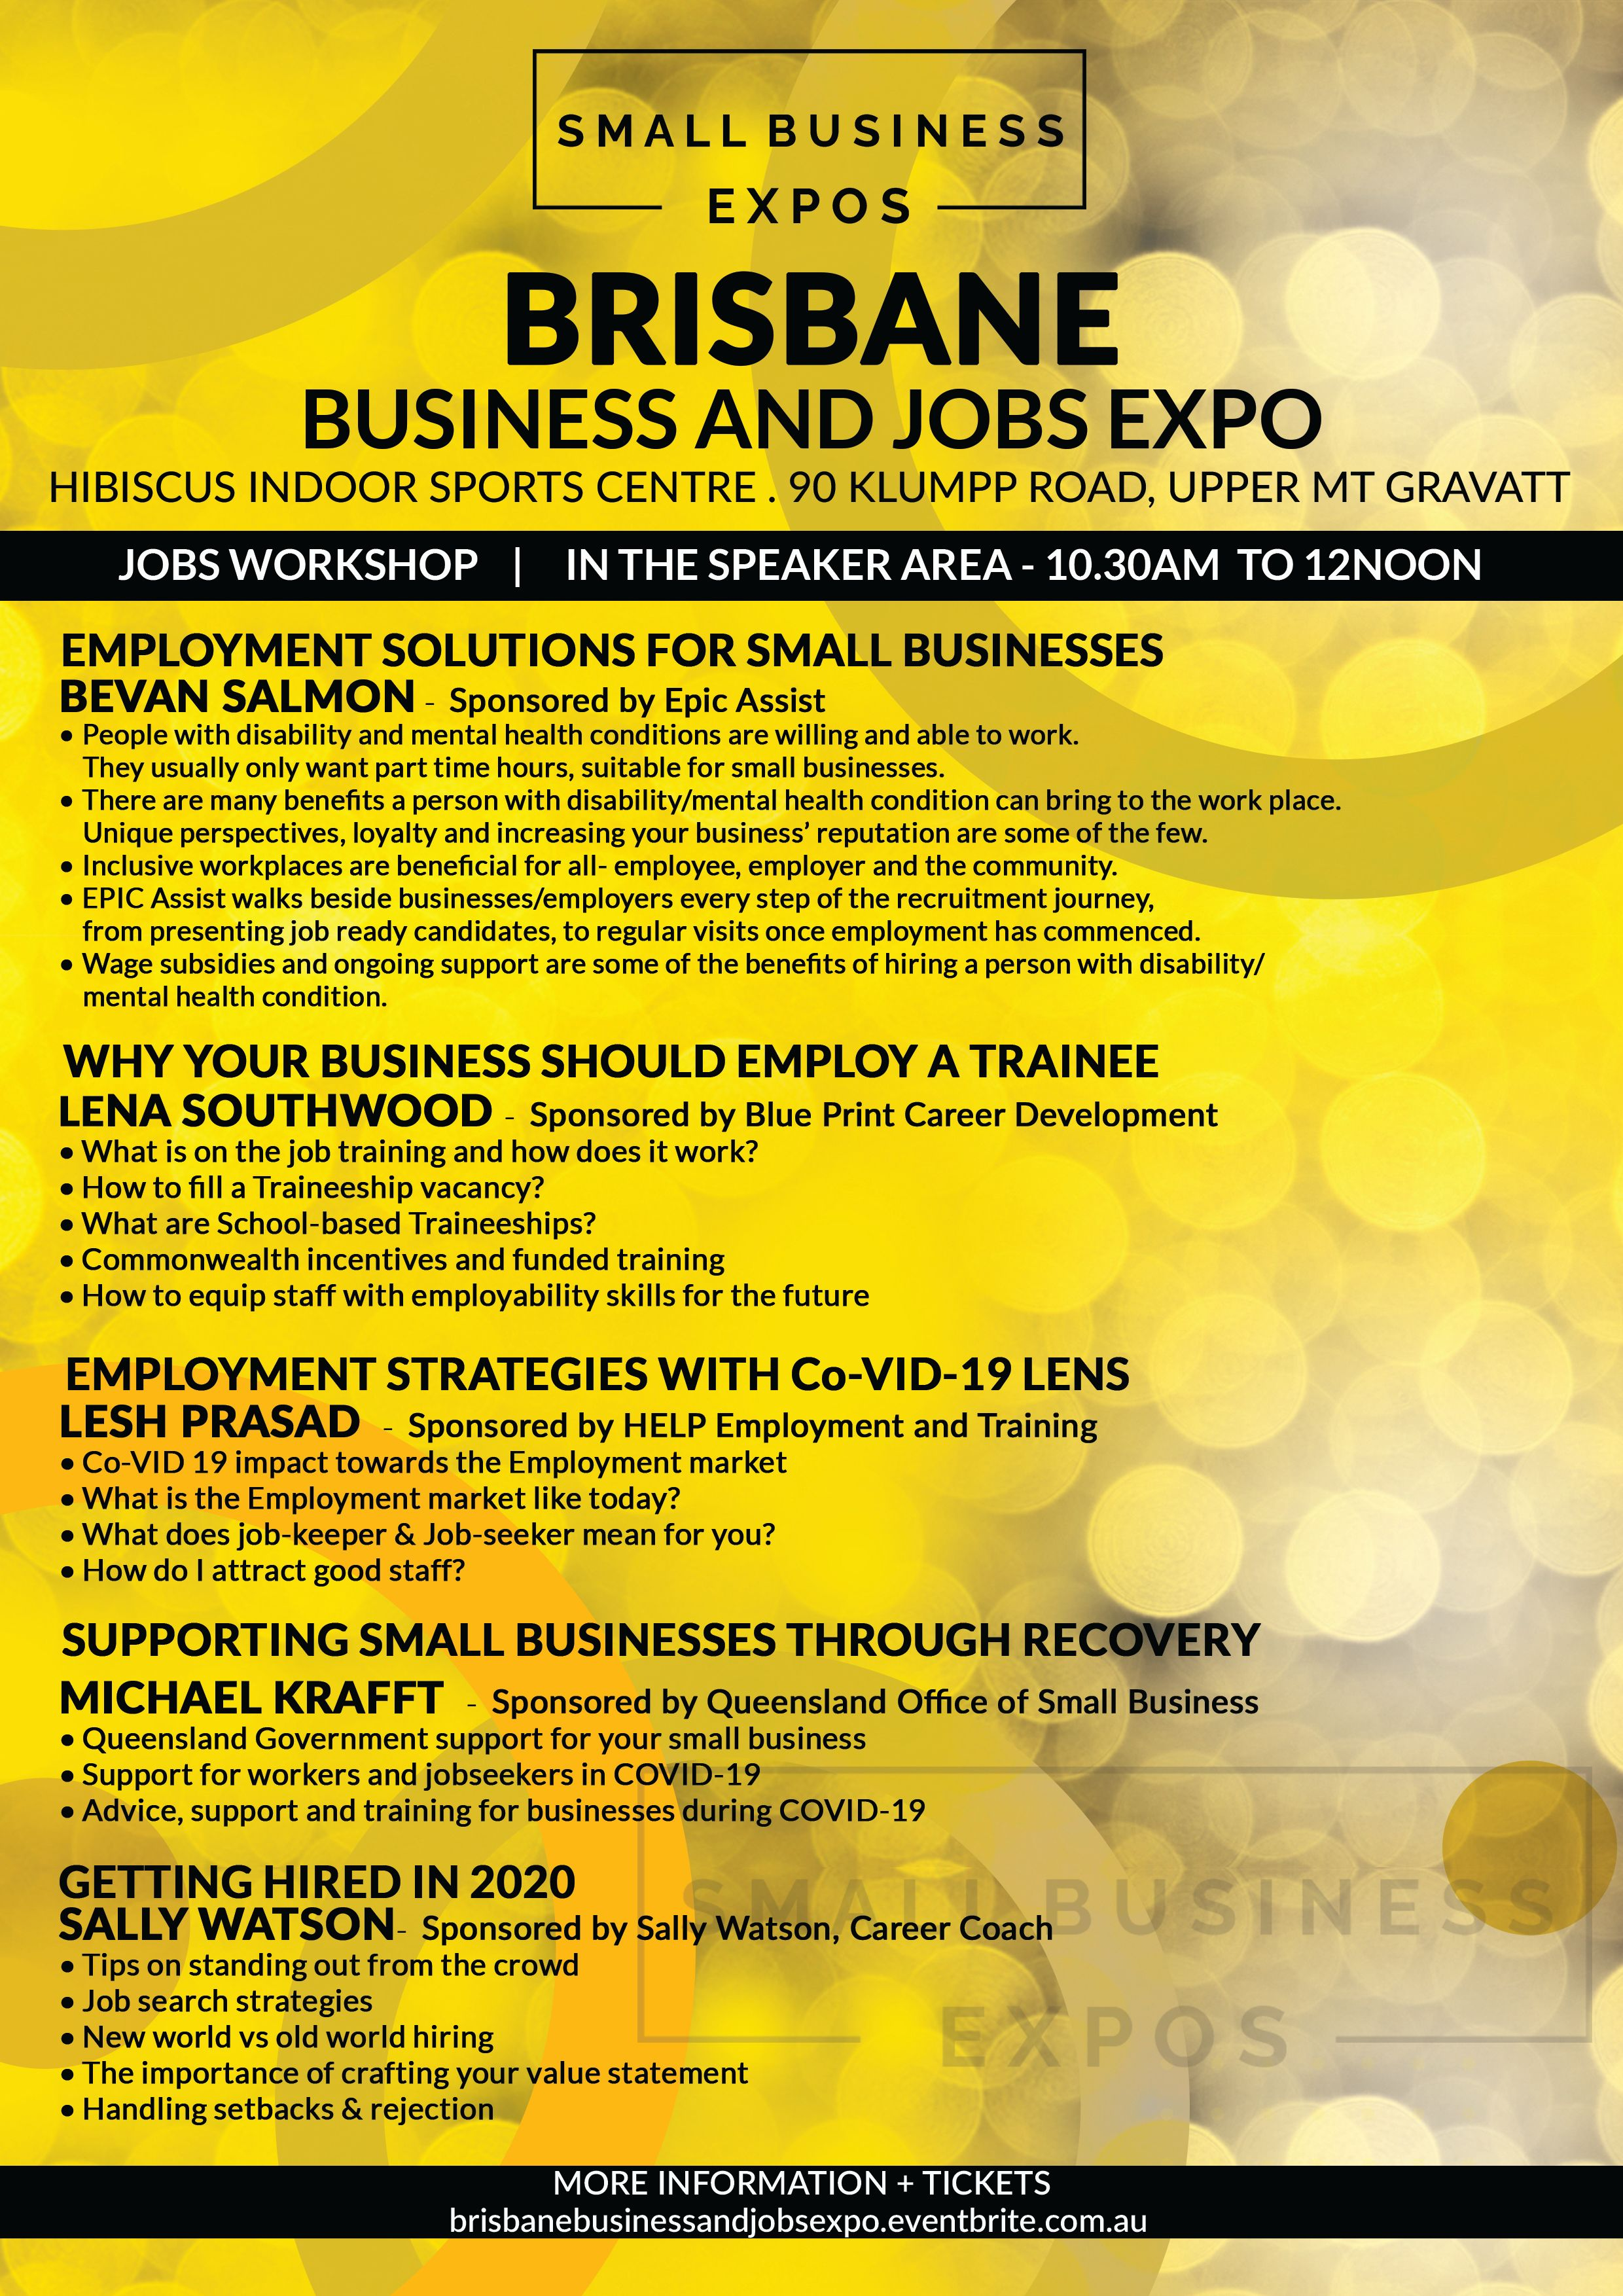 Business Expos | Brisbane | Gold Coast | Small Business Expos | Gxf2fgkq